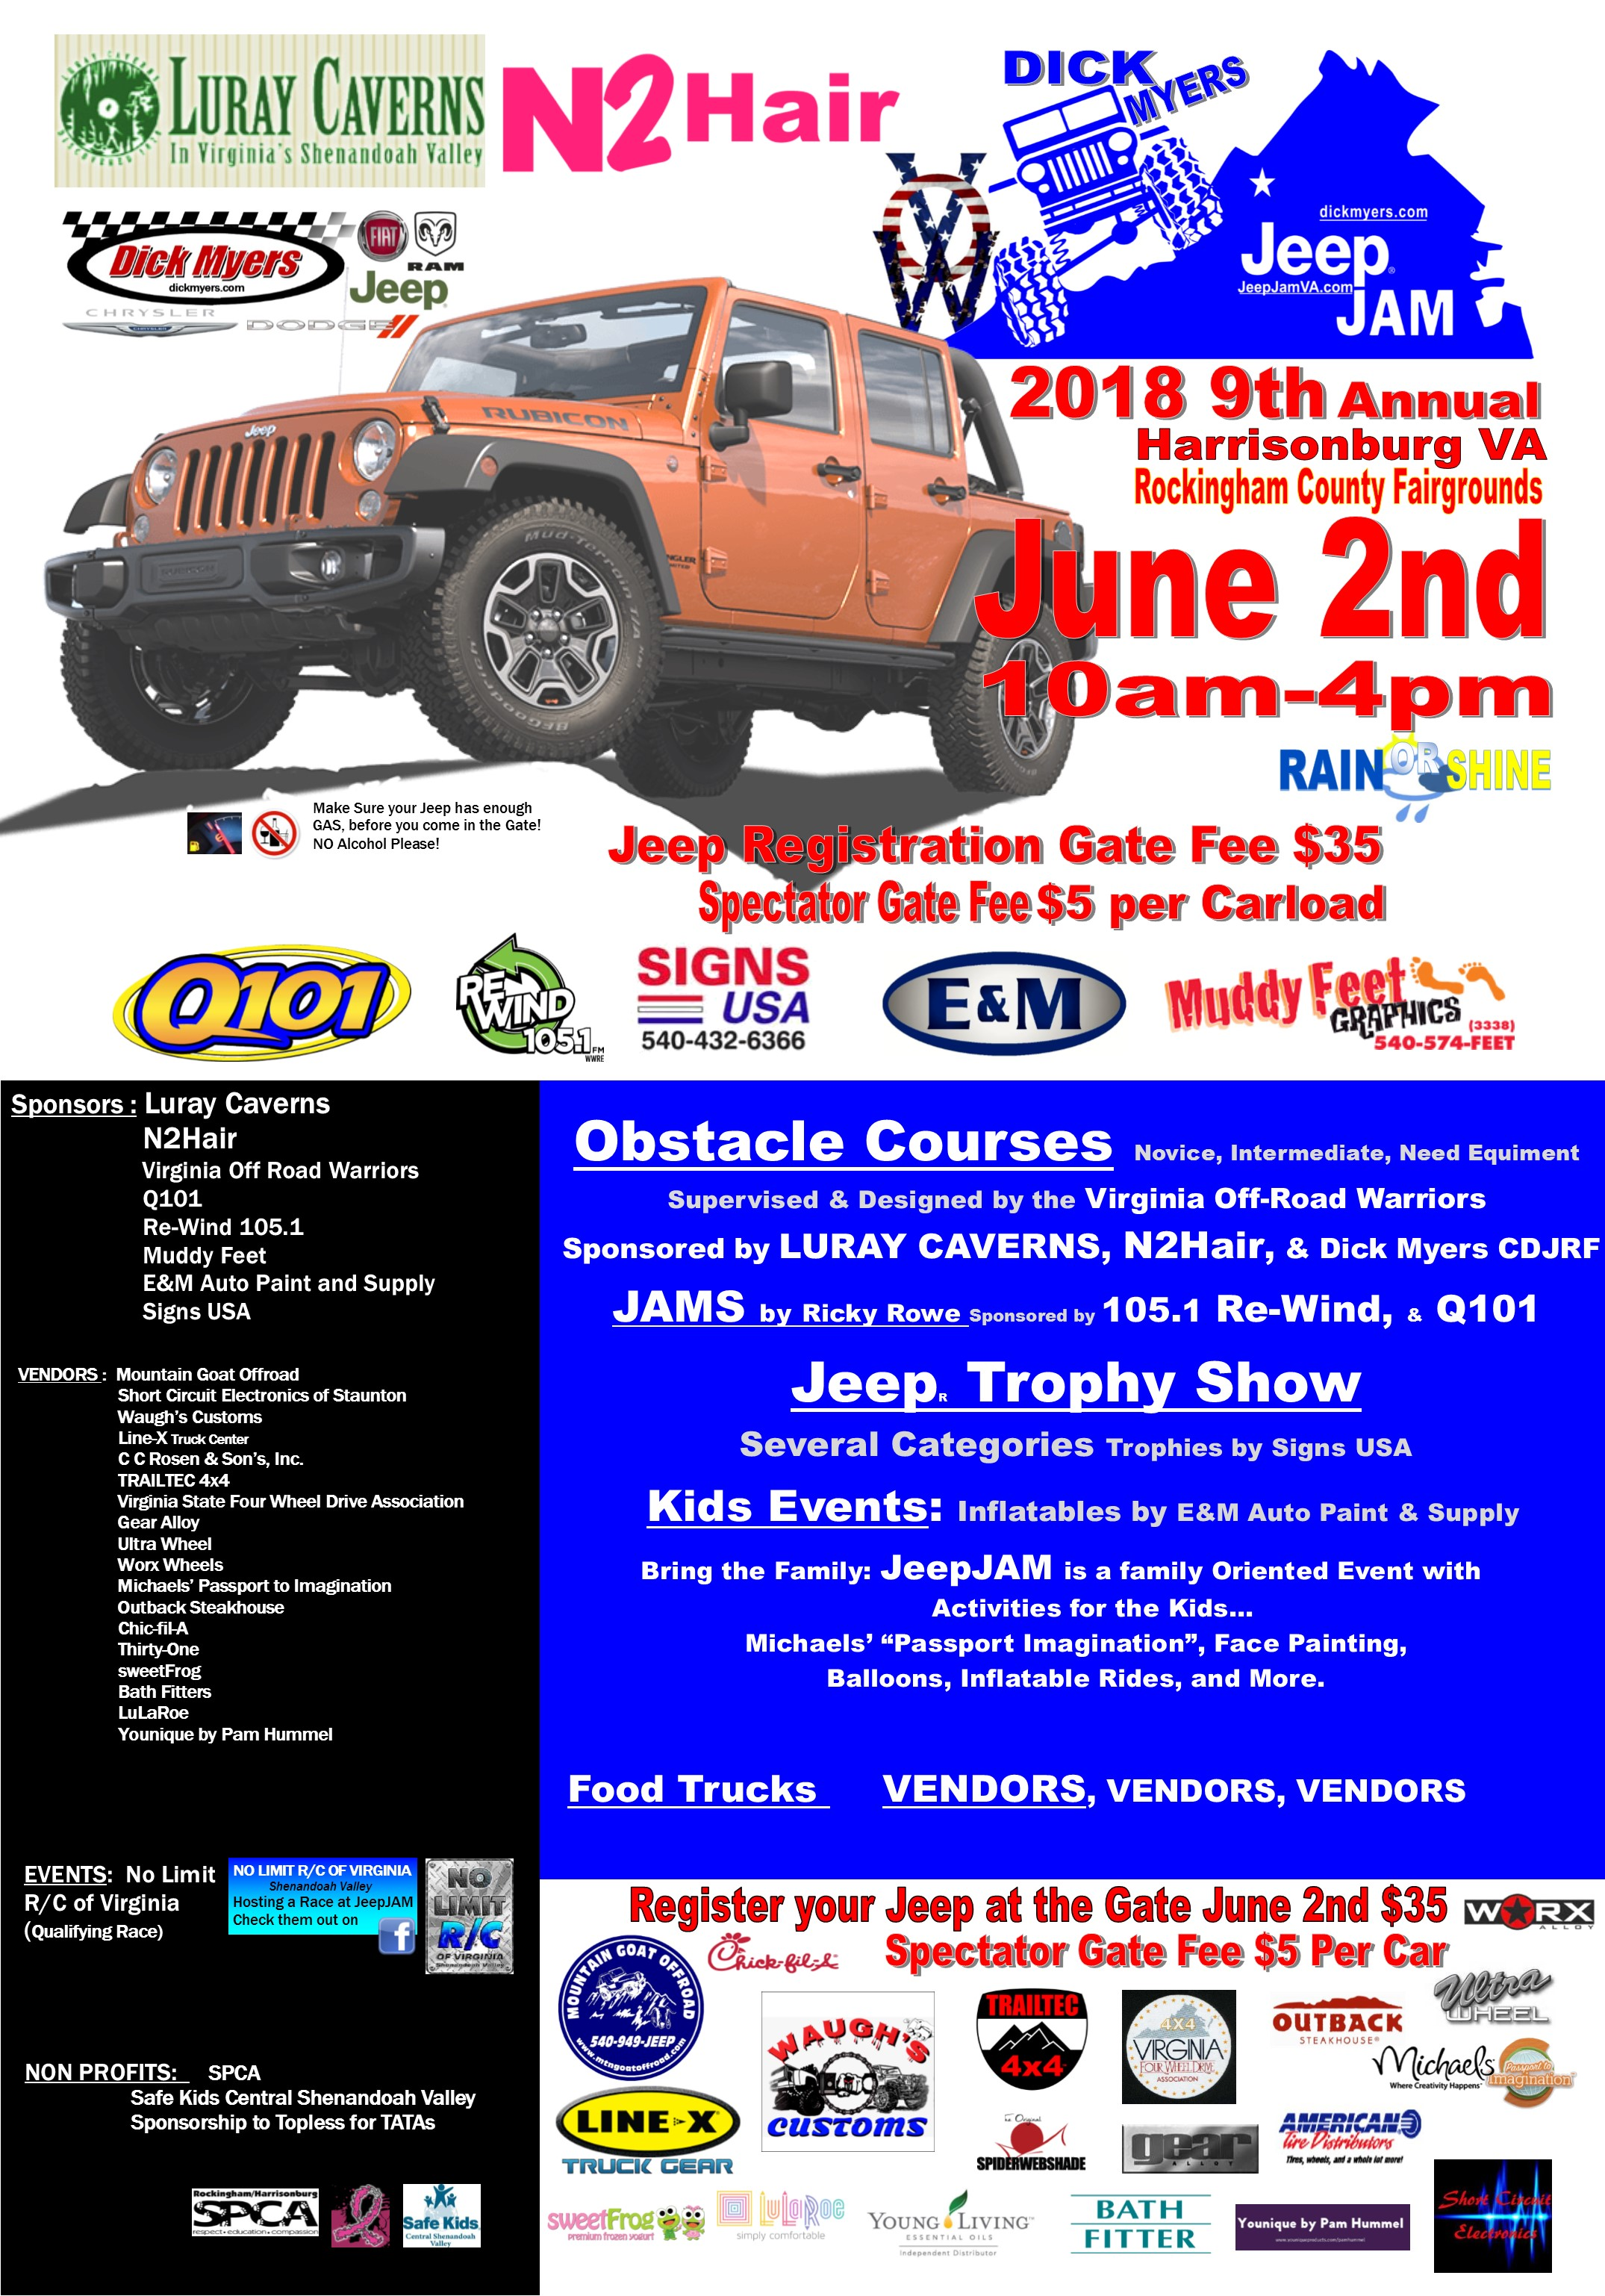 Dick Myers Jeep Jam 2019 Dick Myers Chrysler Dodge Jeep